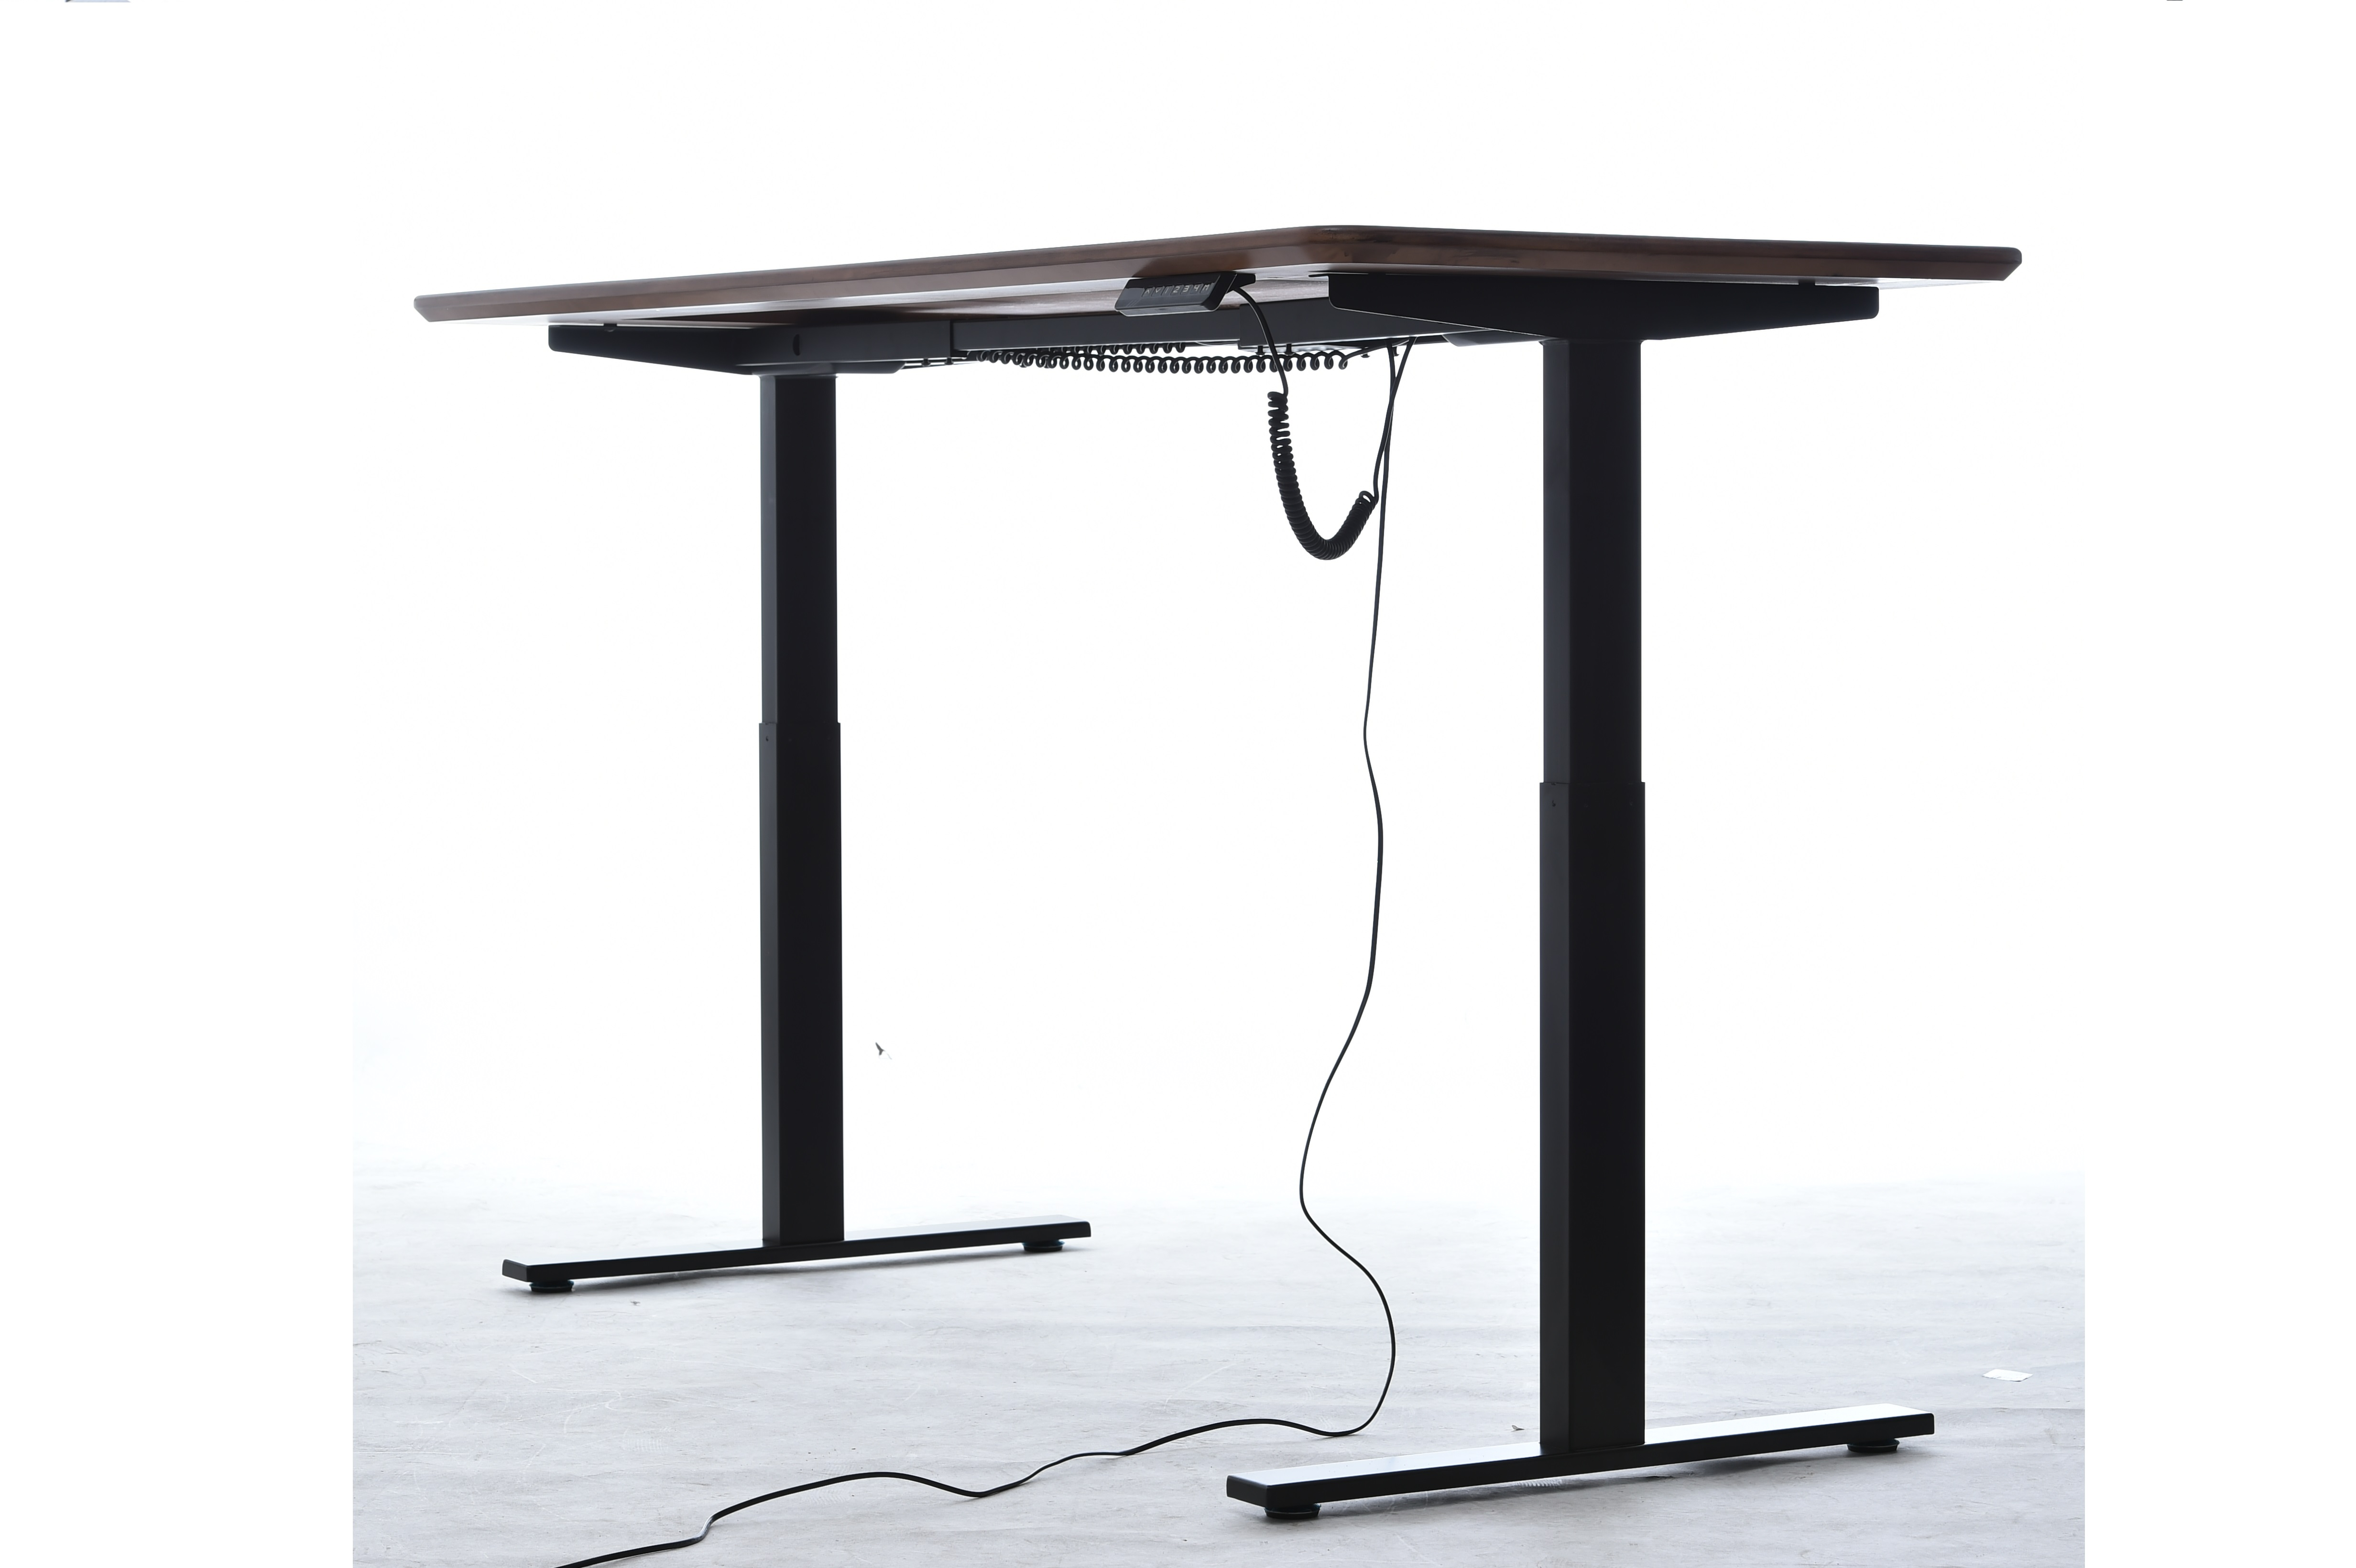 SMART LIFT LIGHT DESK ASED desk with 2 lifting segments and 1 mo